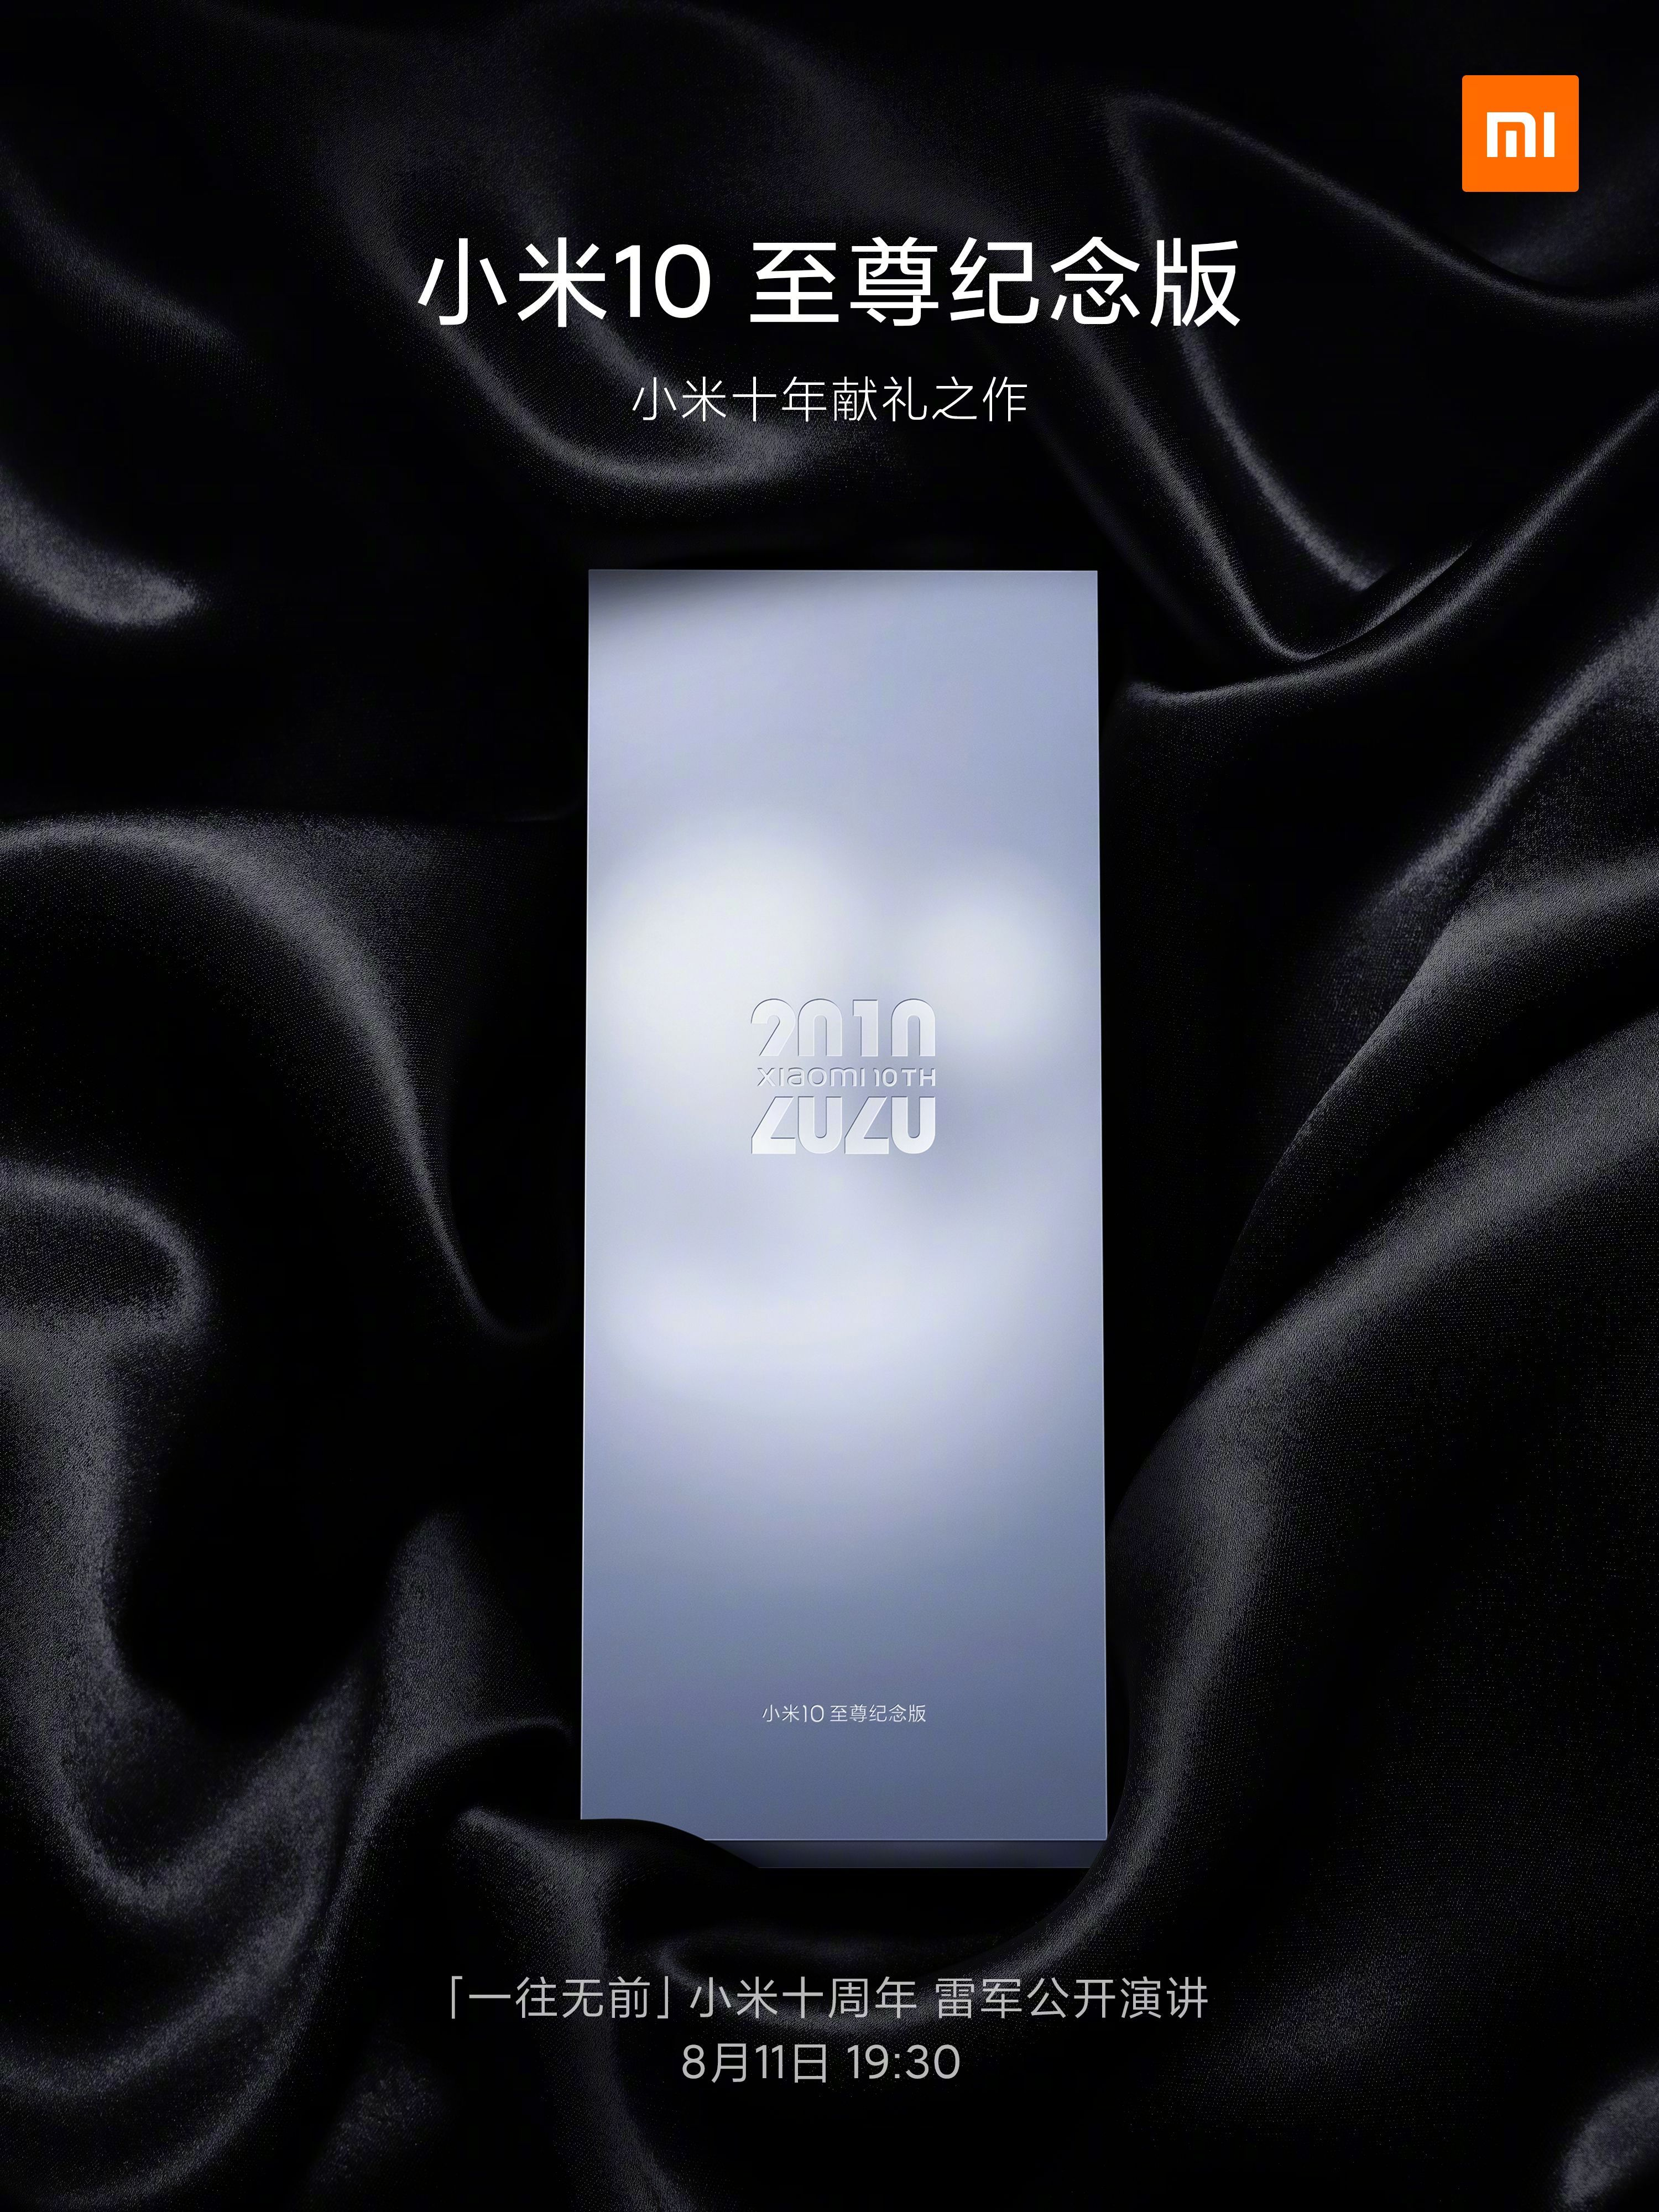 Xiaomi-Mi-10-Extreme-Commerative-Edition-August-11-Launch